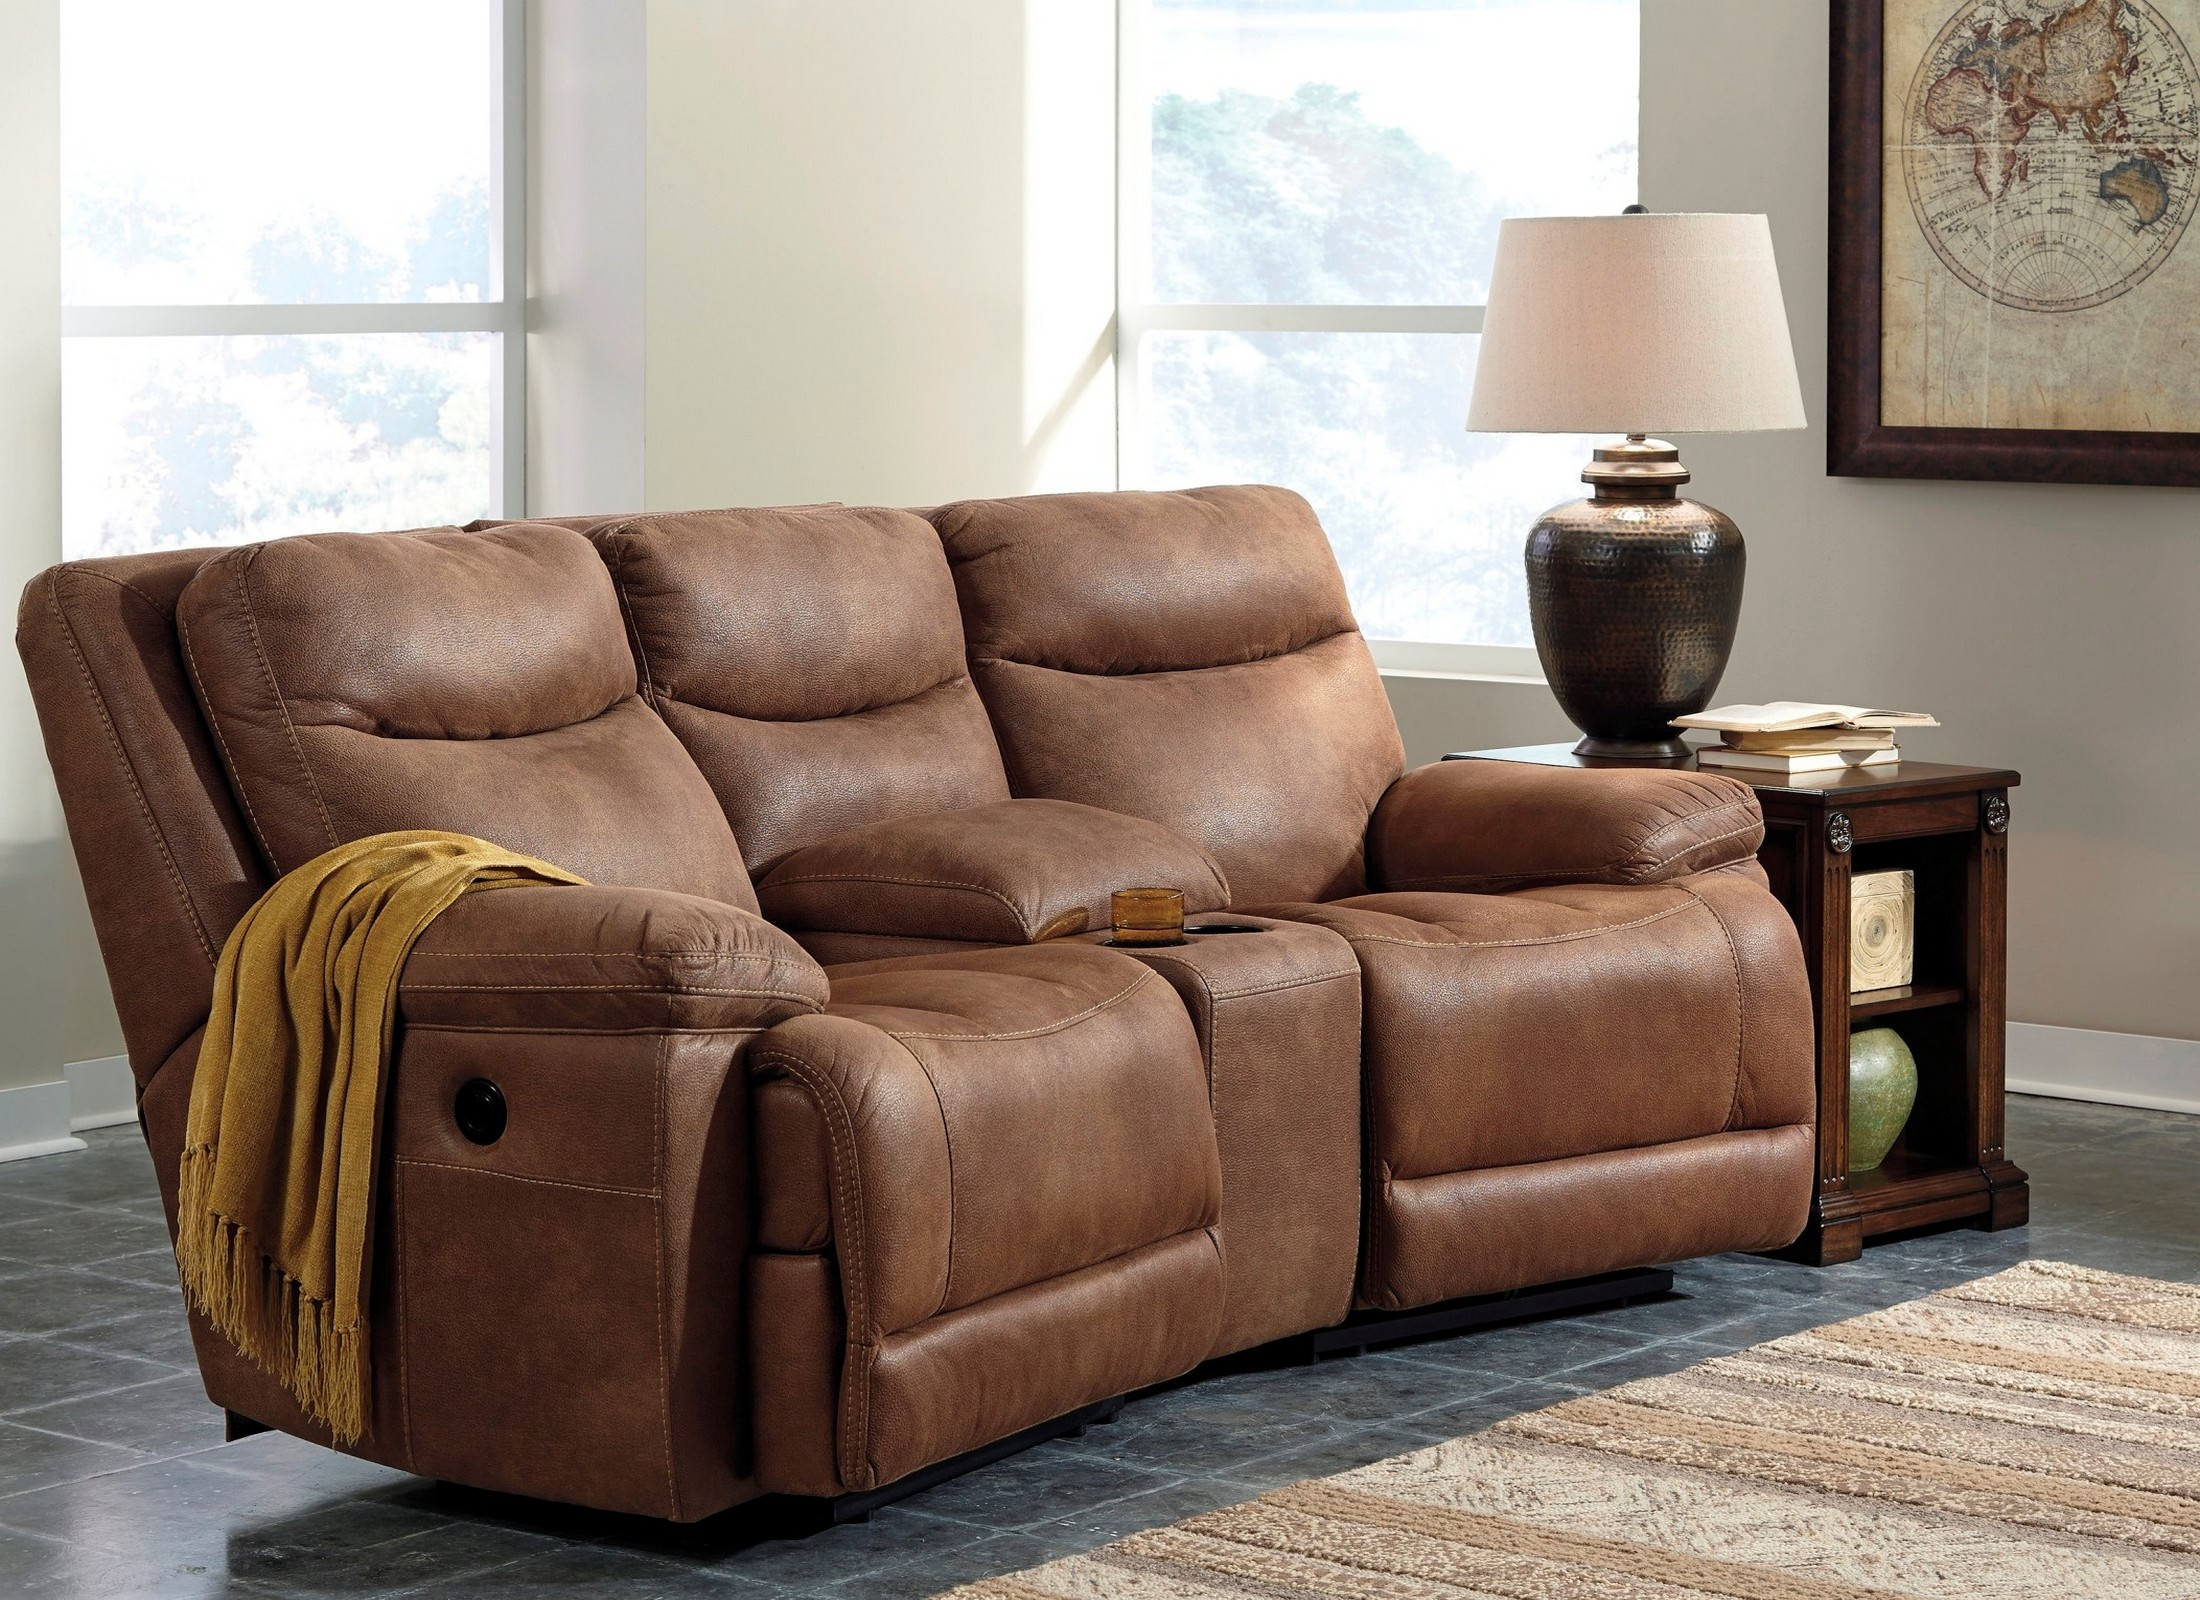 Valto saddle small reclining entertainment sectional for Affordable furniture 3 piece sectional in wyoming saddle